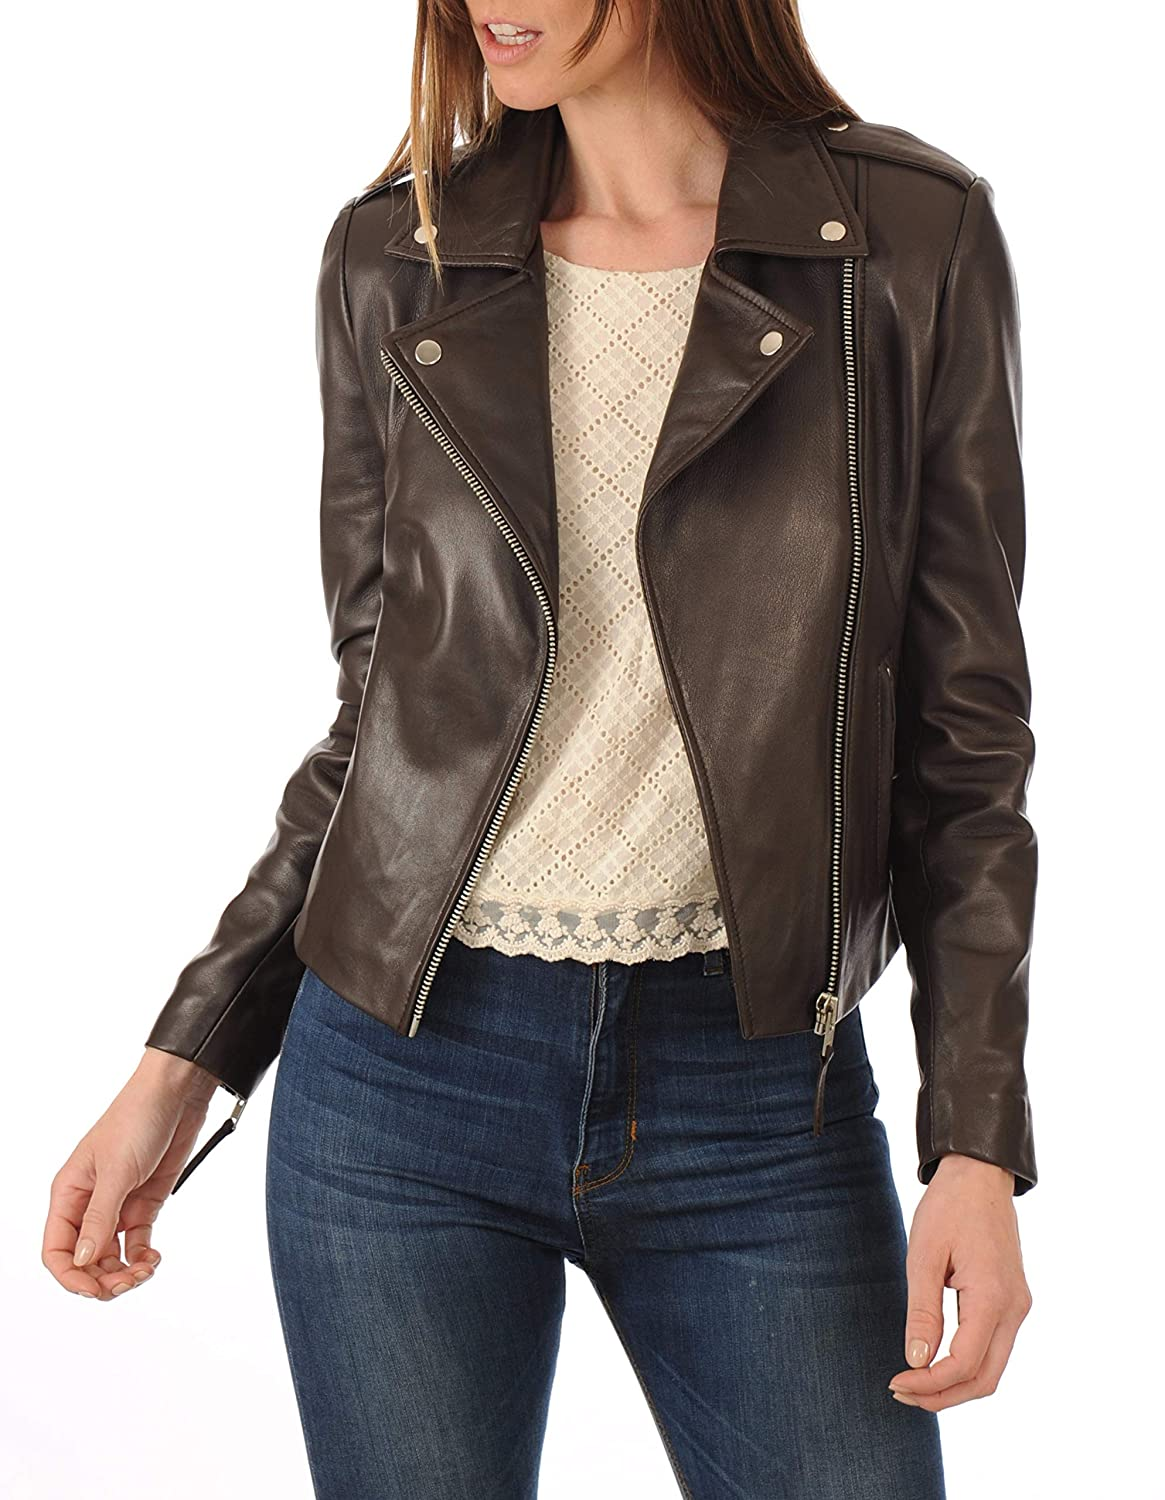 Browns3 DOLBERG CREATIONS Sheepskin Leather Jacket for Womens